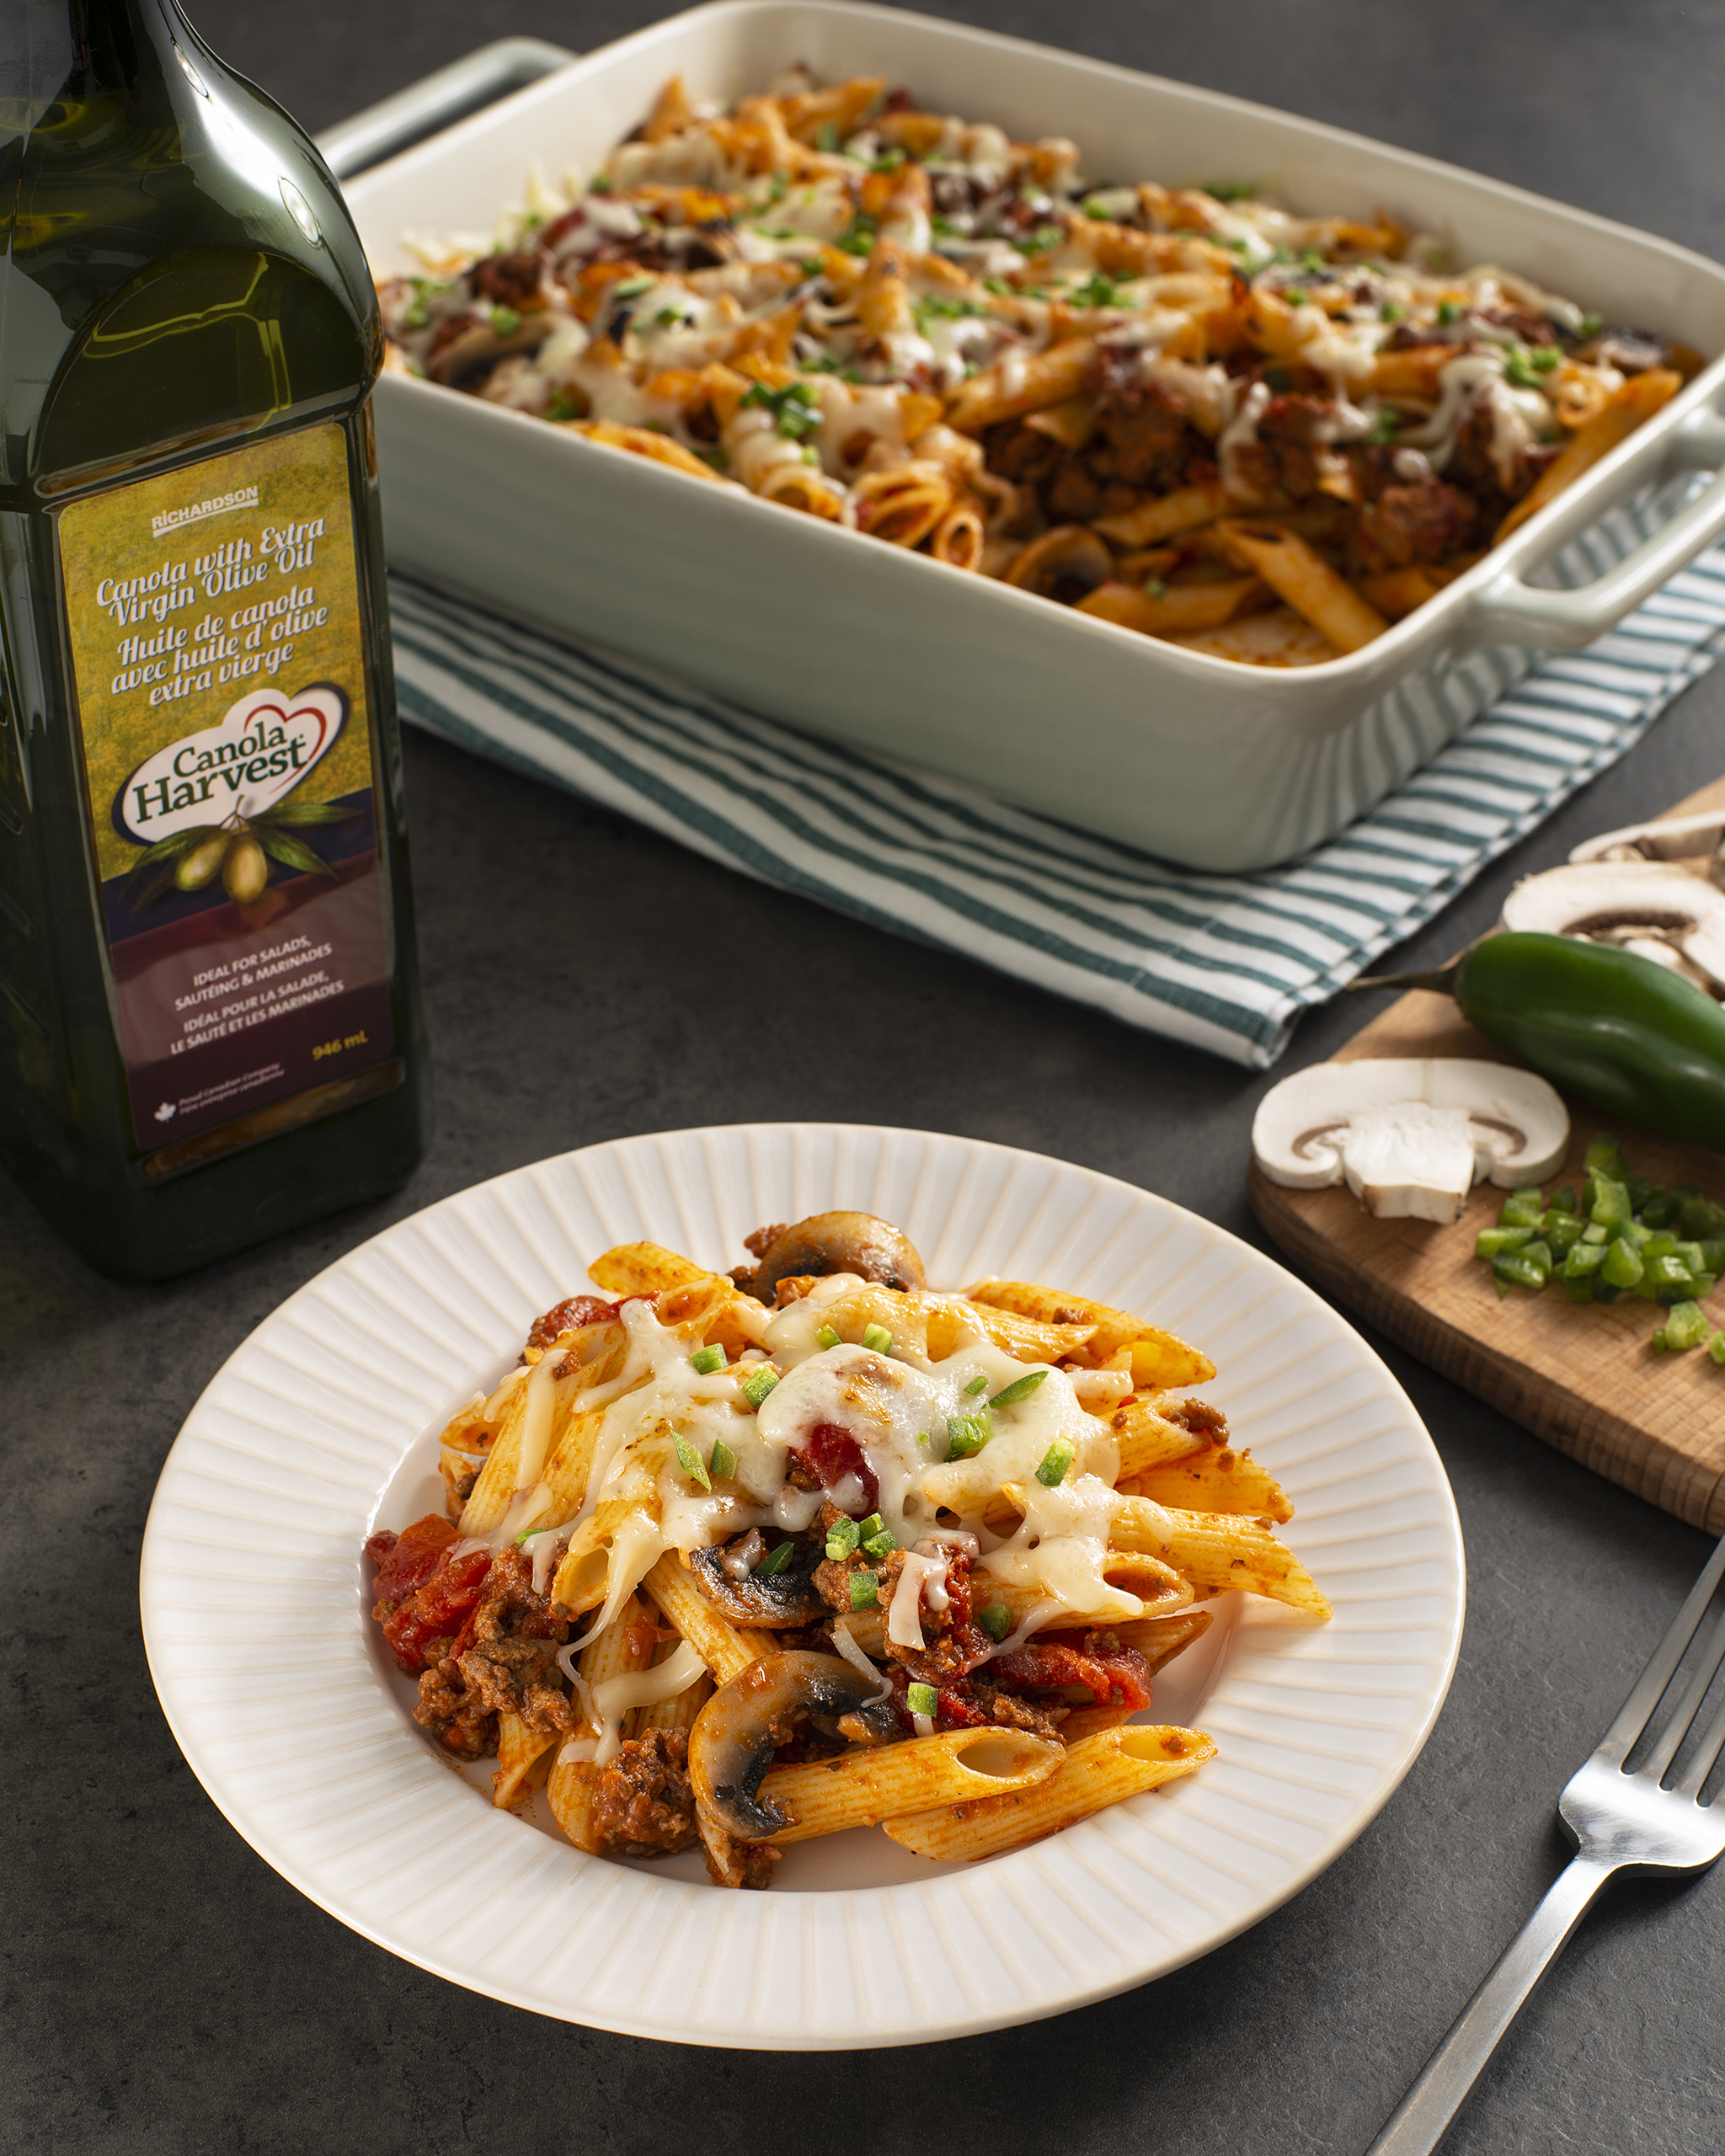 Photo of Italian Pasta Bake with Canola Harvest oil blend with olive oil